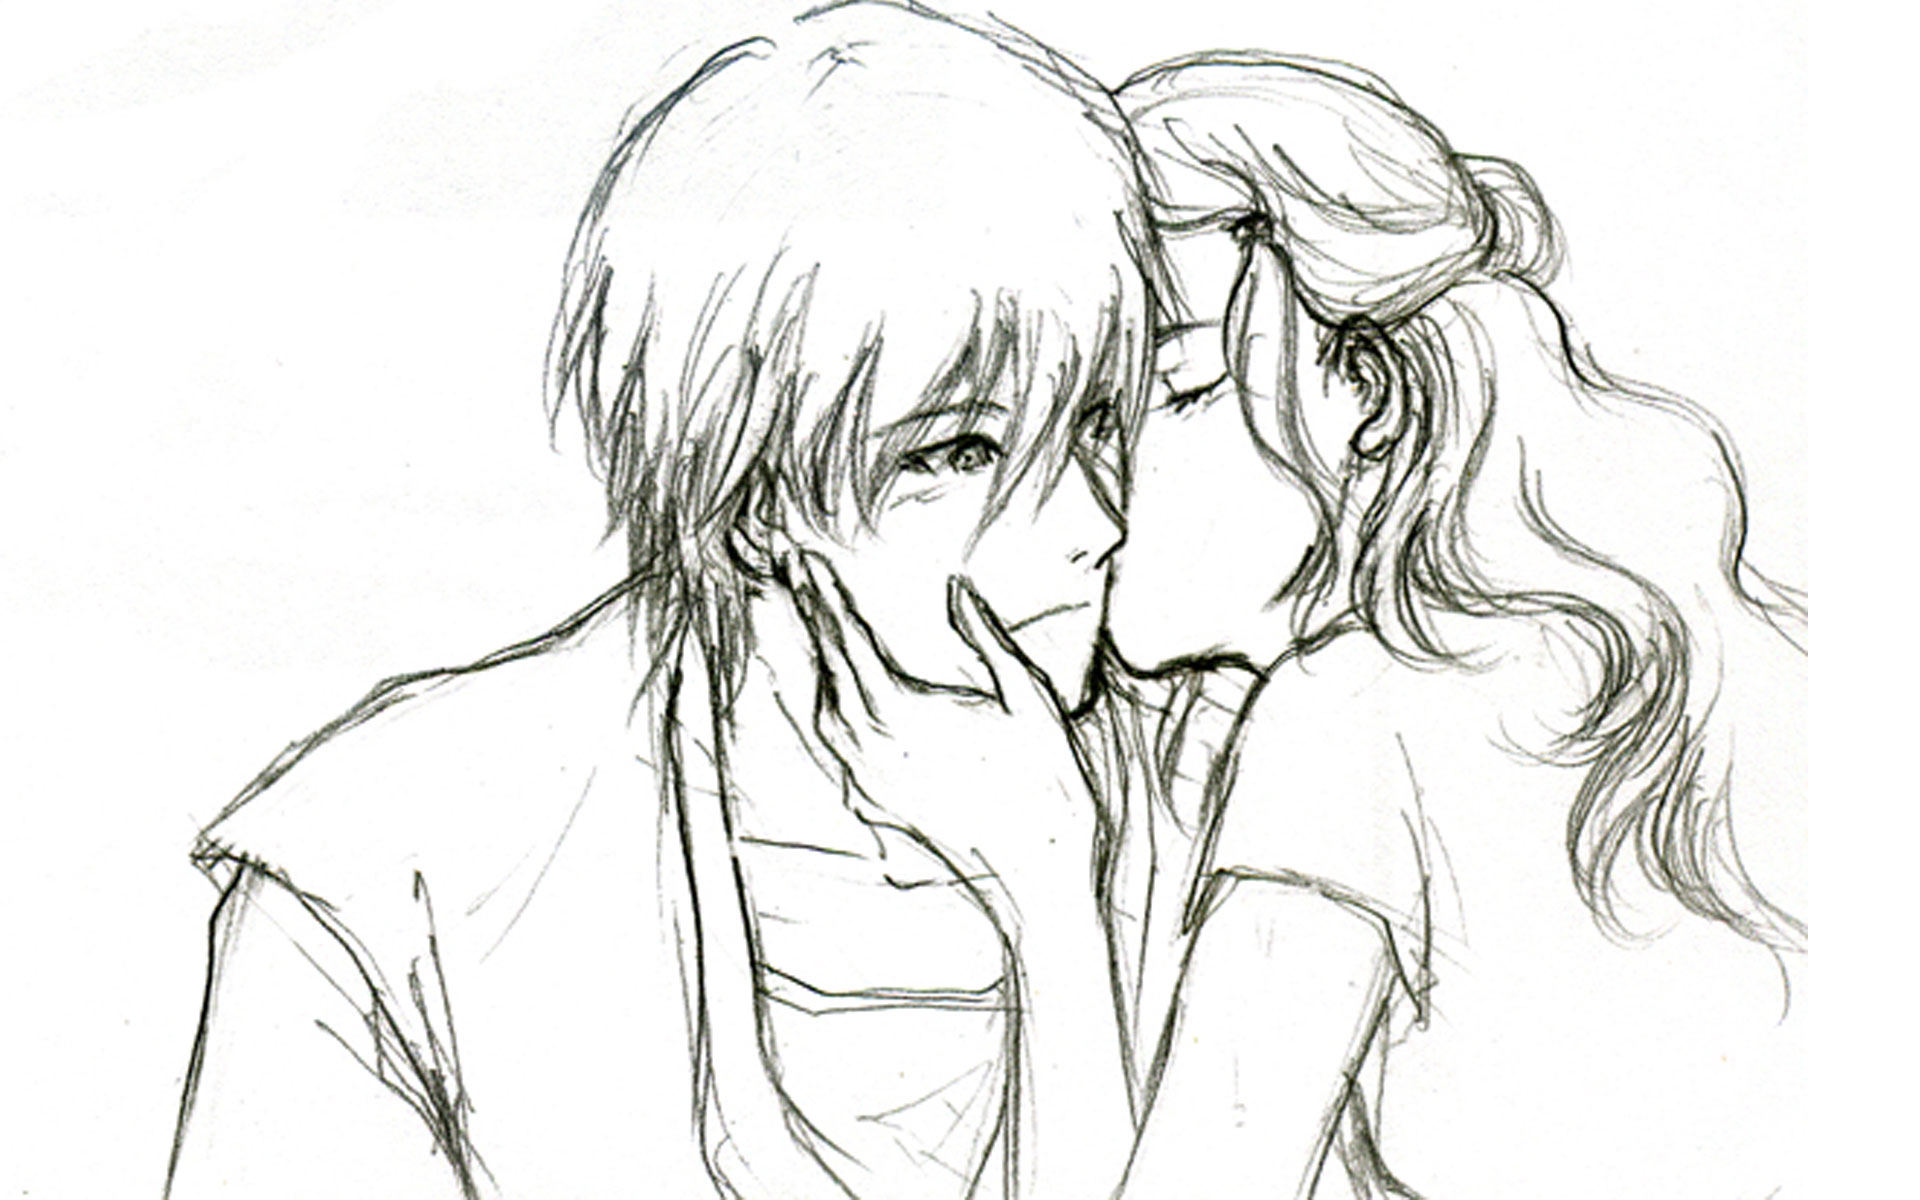 1920x1200 Anime Pencil Sketch Boy And Girl In Love Pencil Drawings